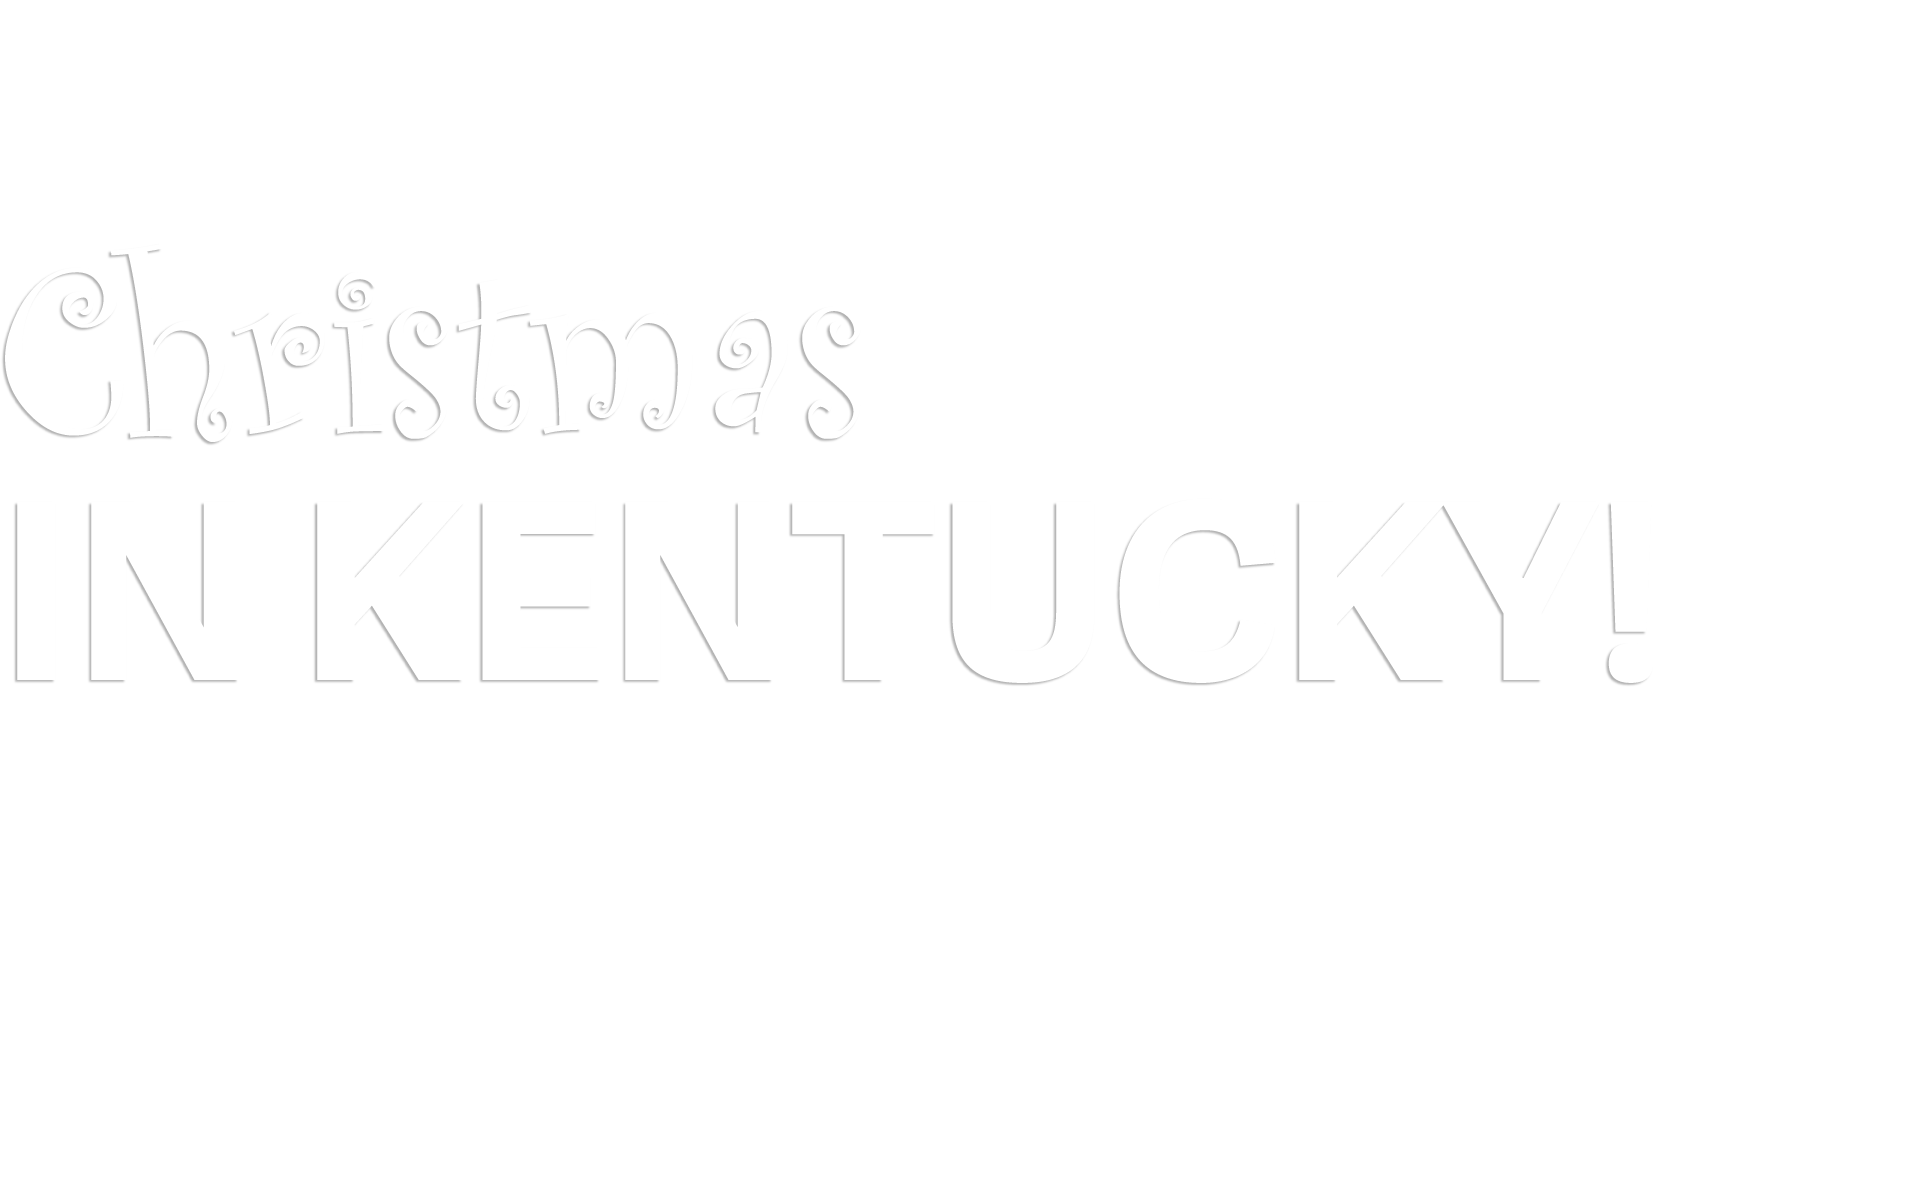 Christmas in Kentucky!